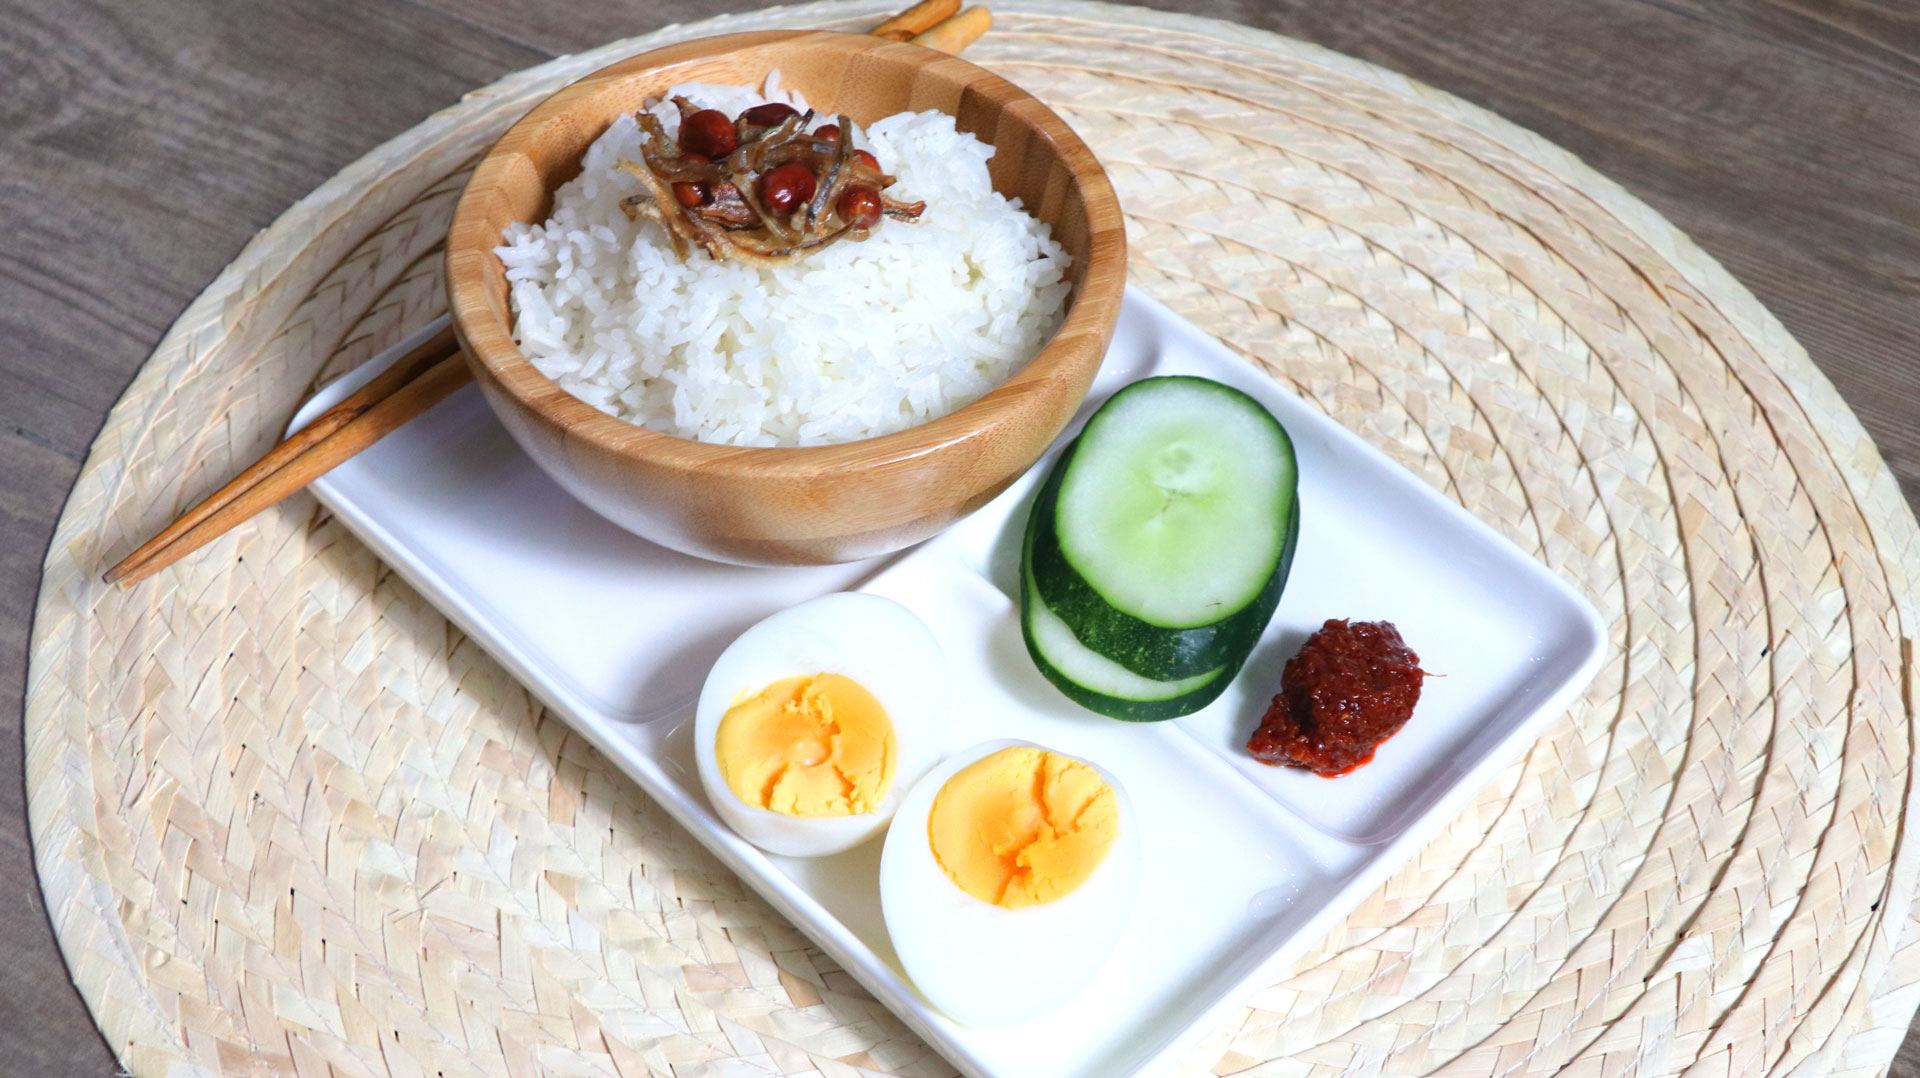 two-bad-chefs-coconut-rice-dish-02.jpg